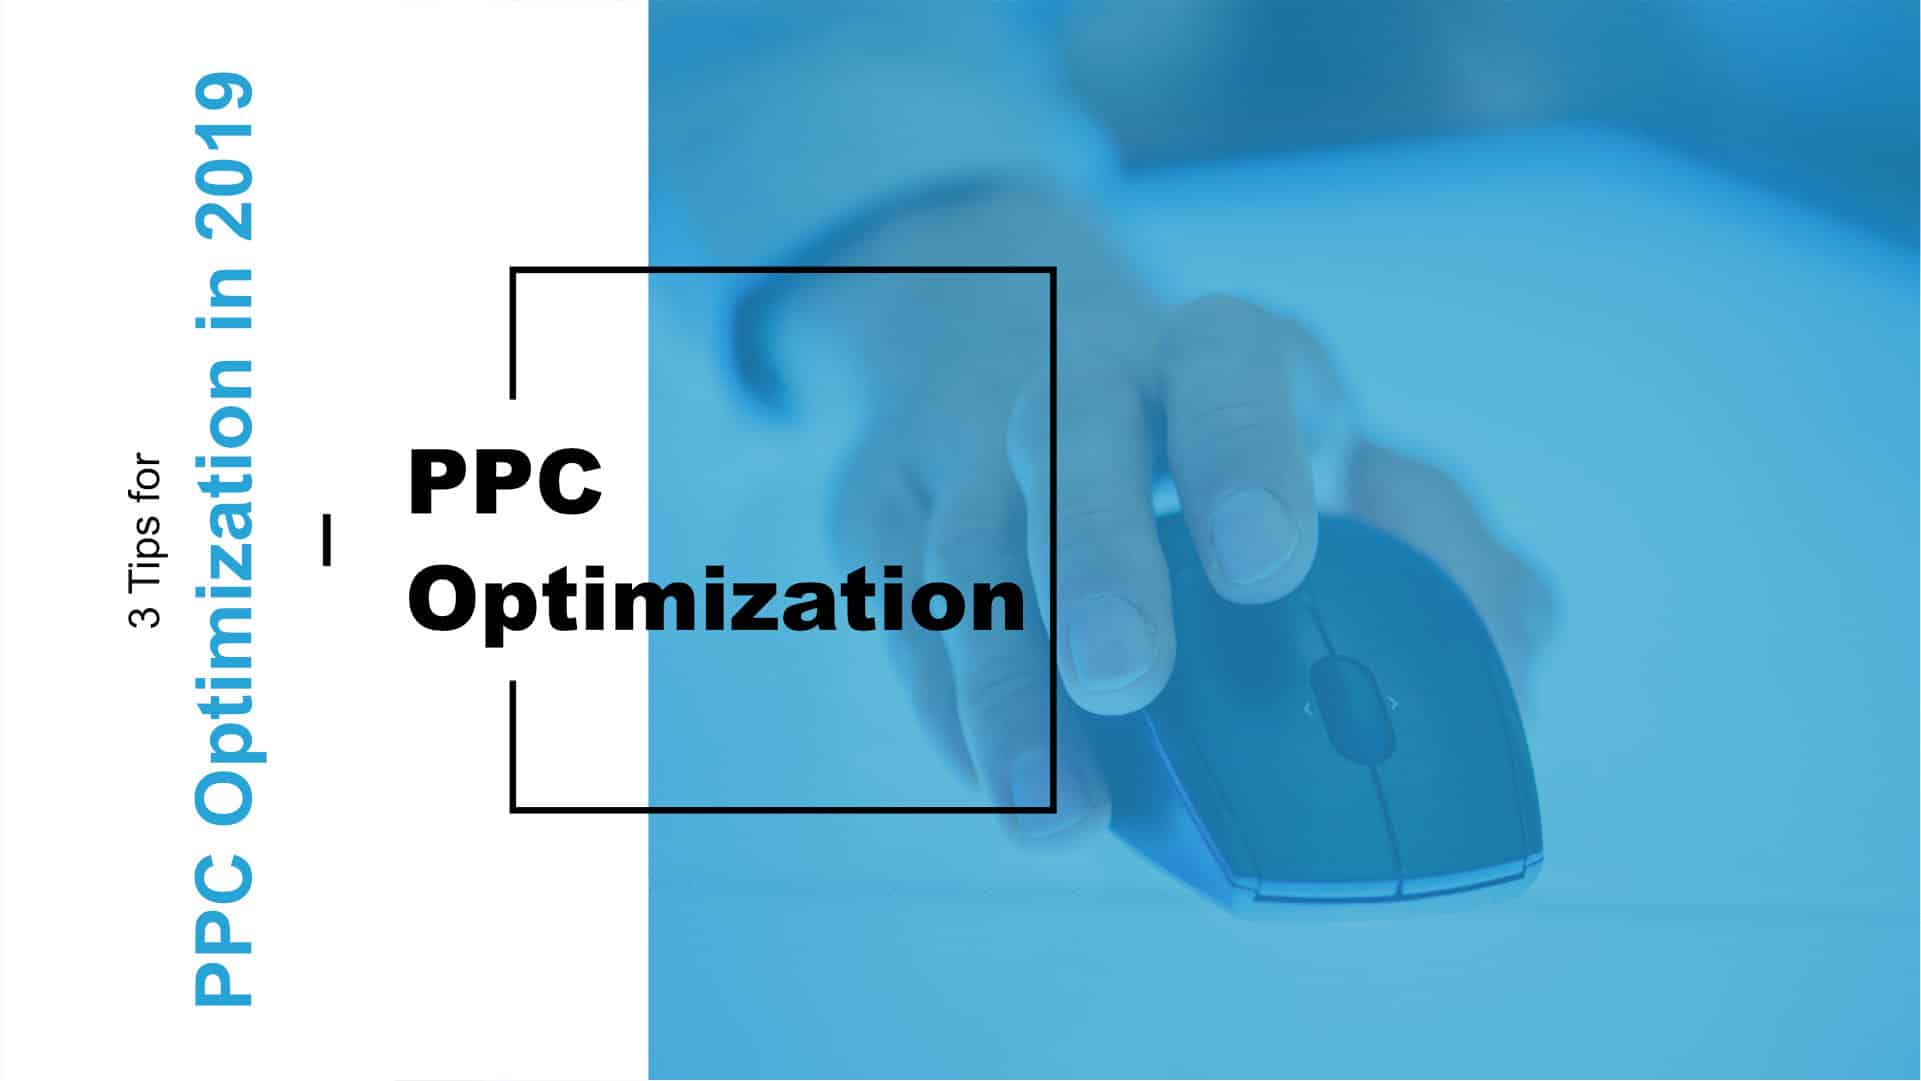 3 Tips for PPC Optimization in 2019 Featured Image